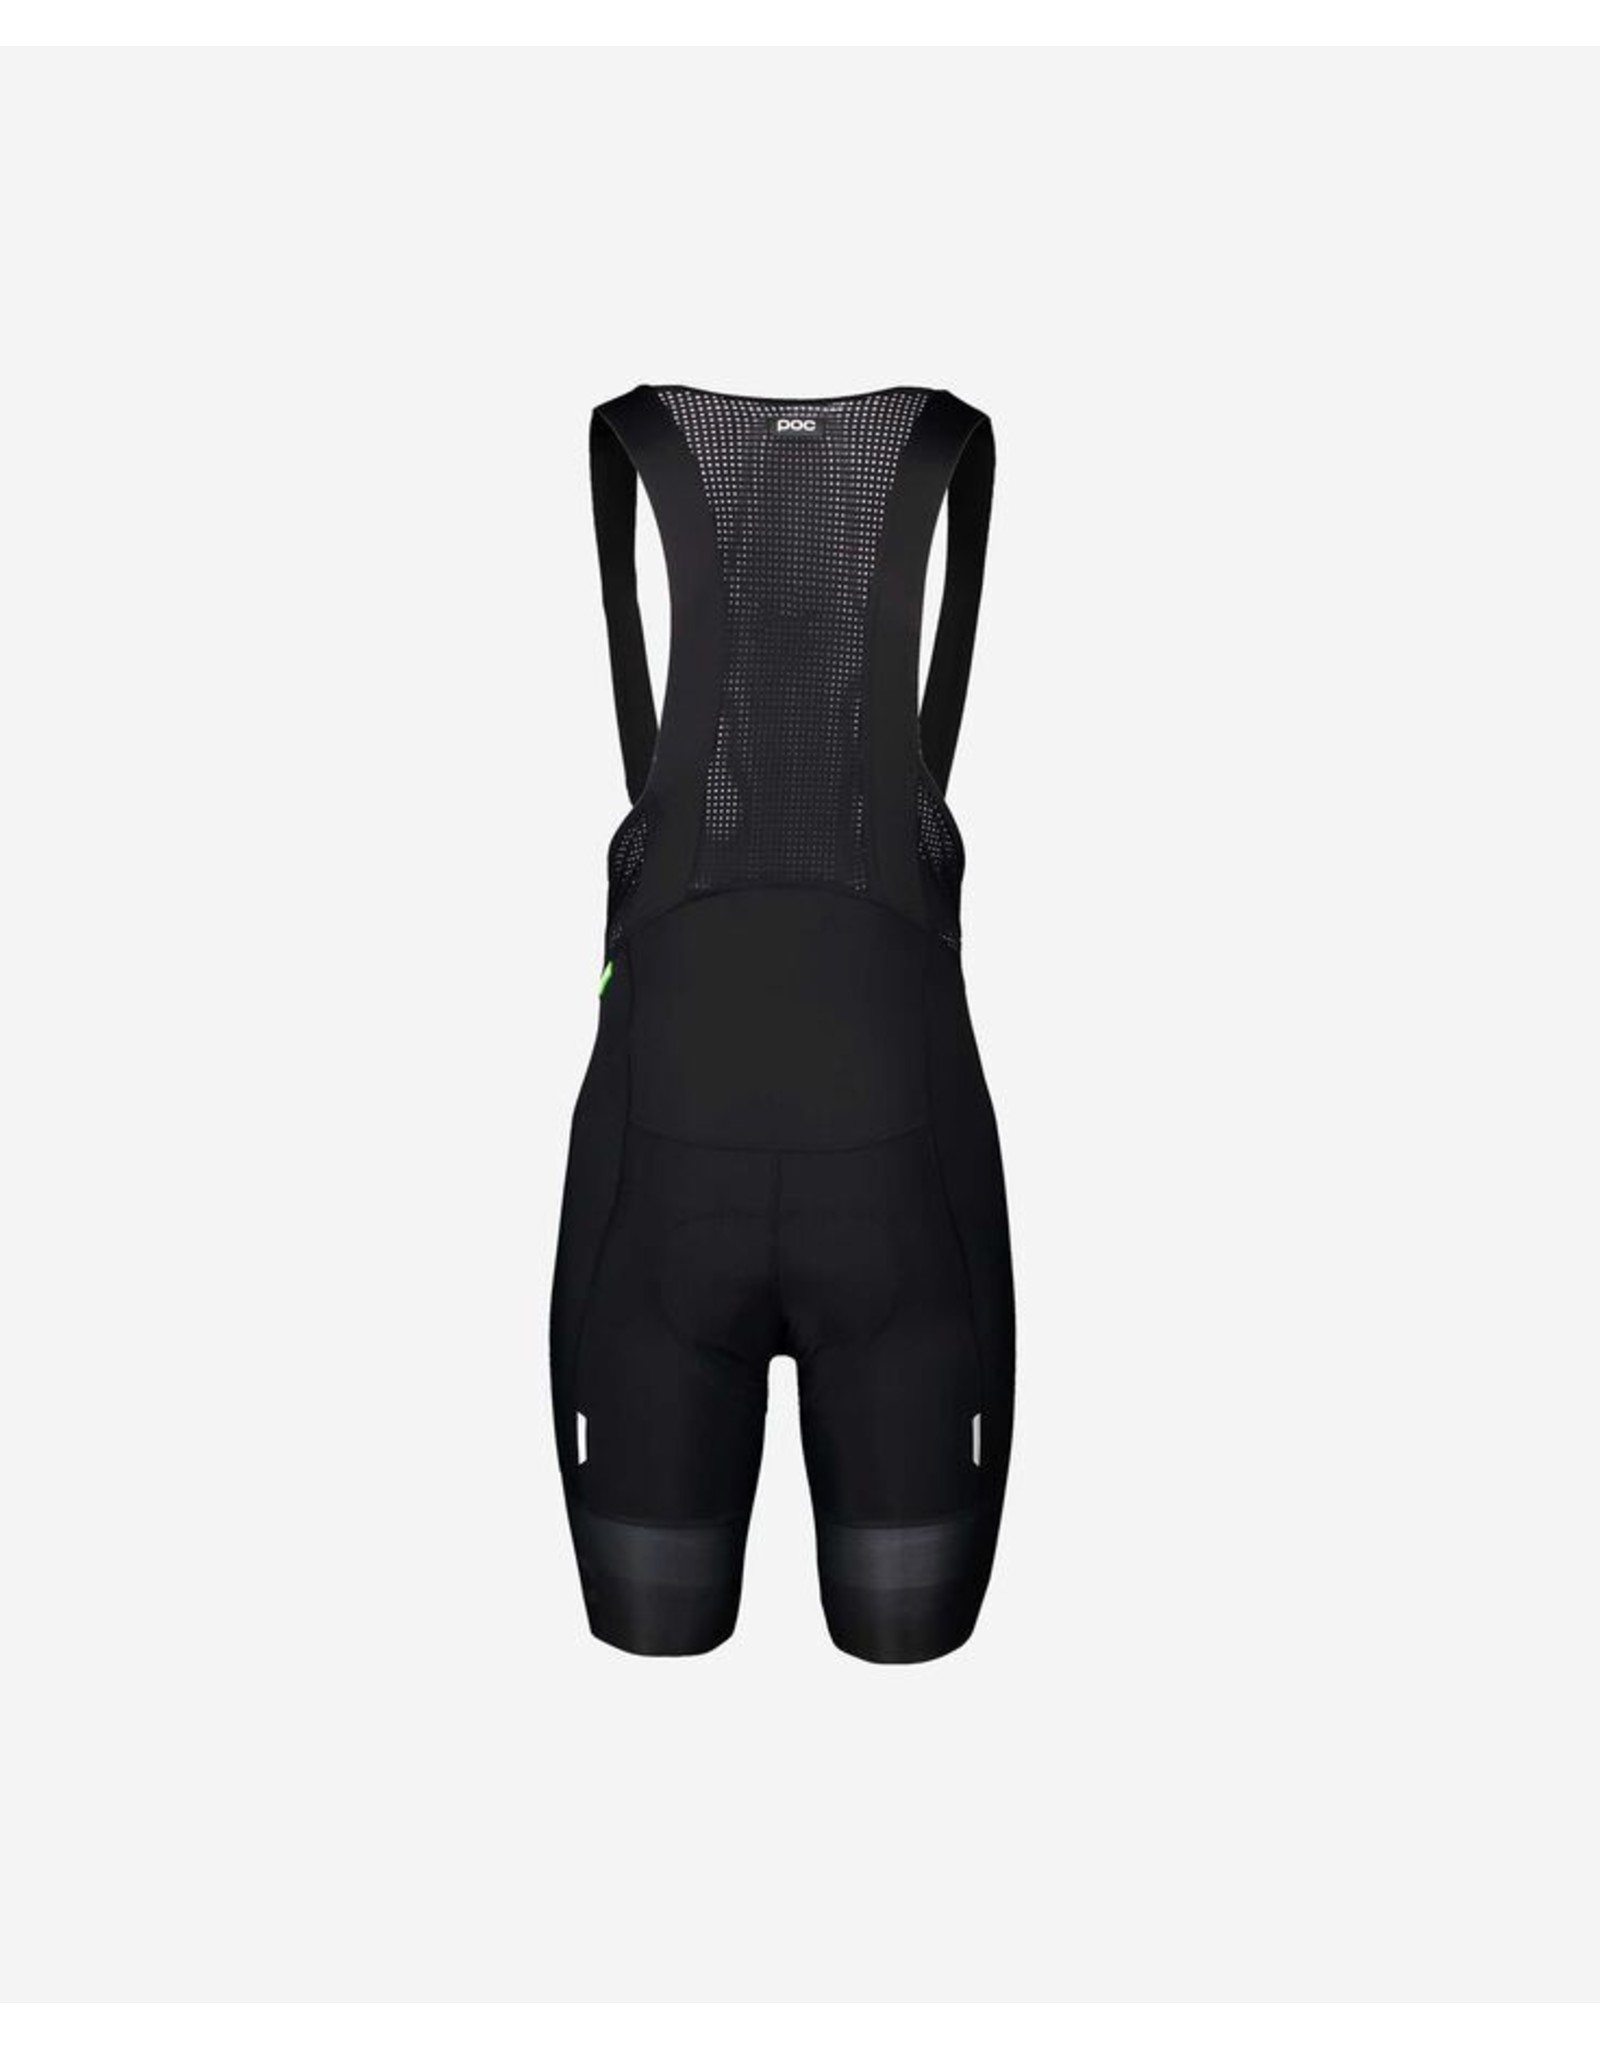 POC POC Essential Road VPDS Bib Shorts